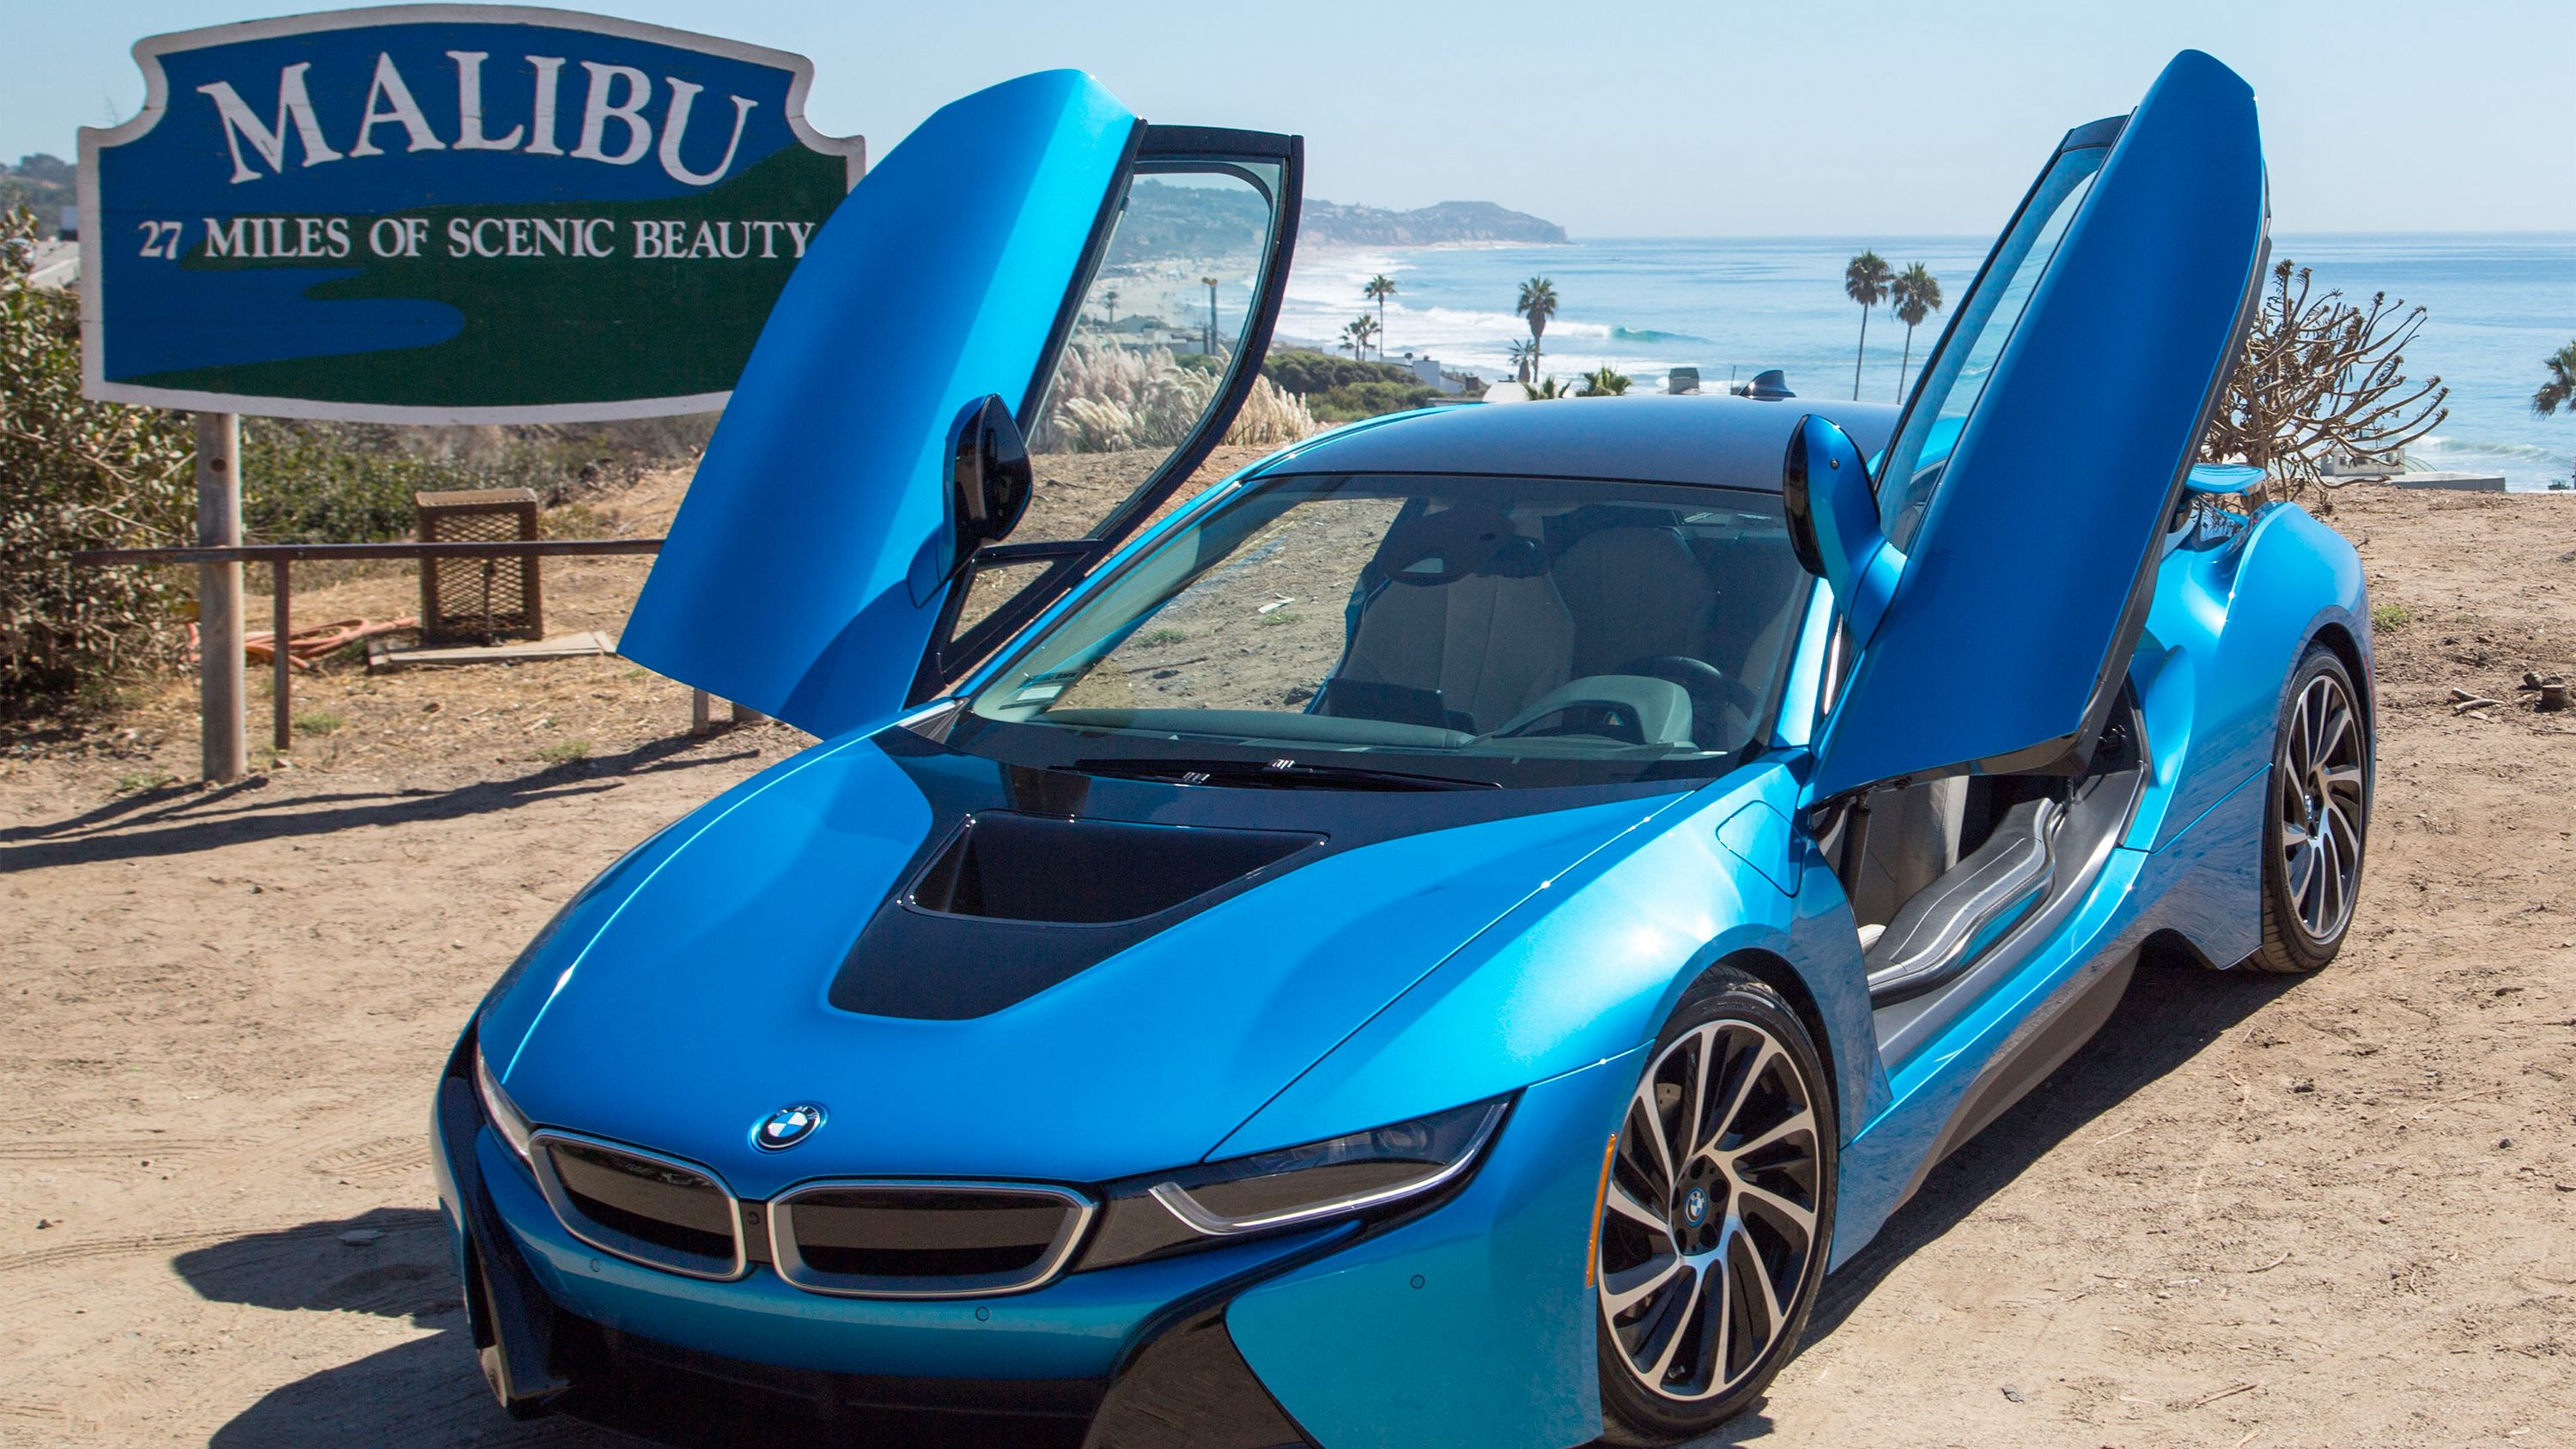 Guided Luxury Sports Car Tour of Malibu